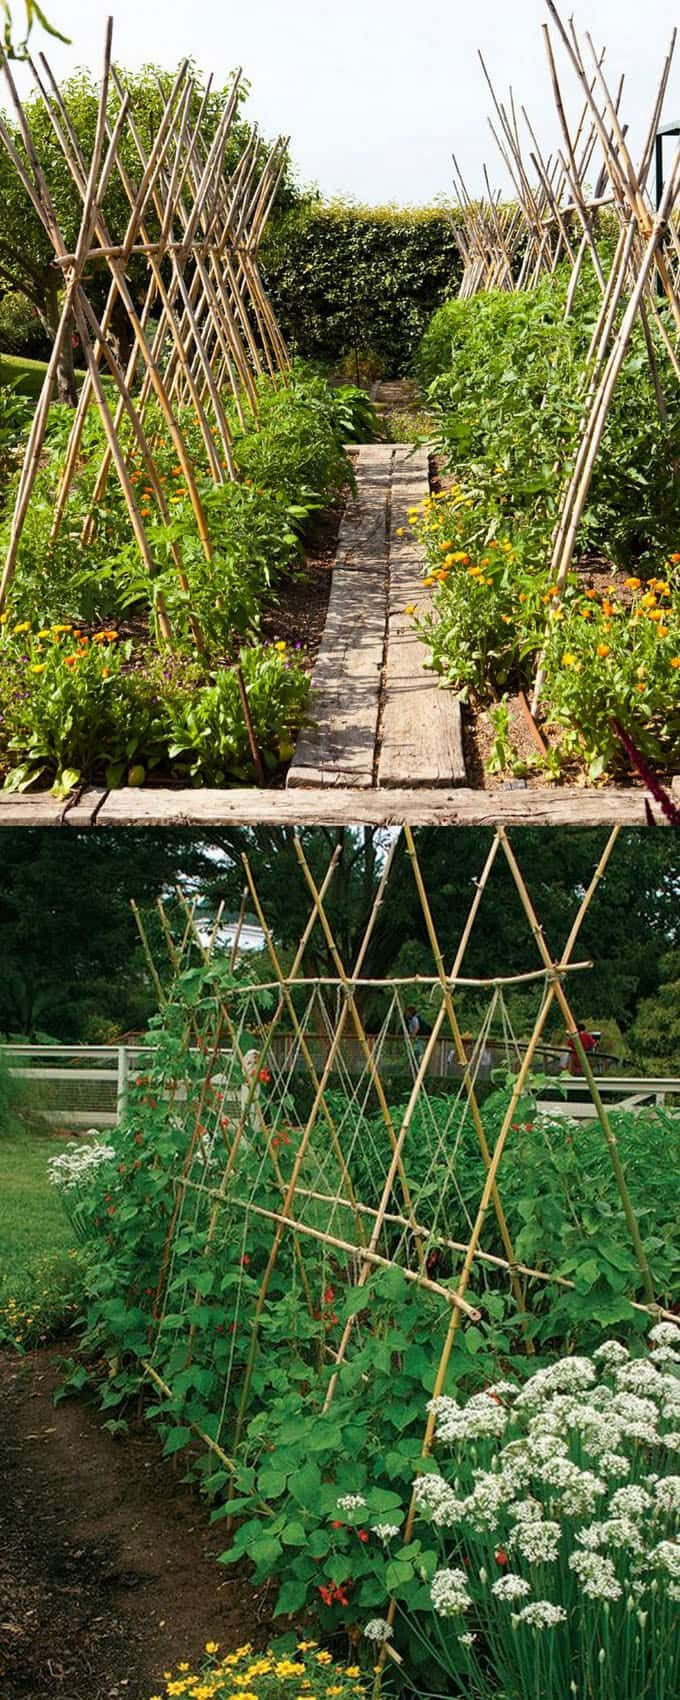 Simphome.com easy diy garden trellis ideas vertical growing structures